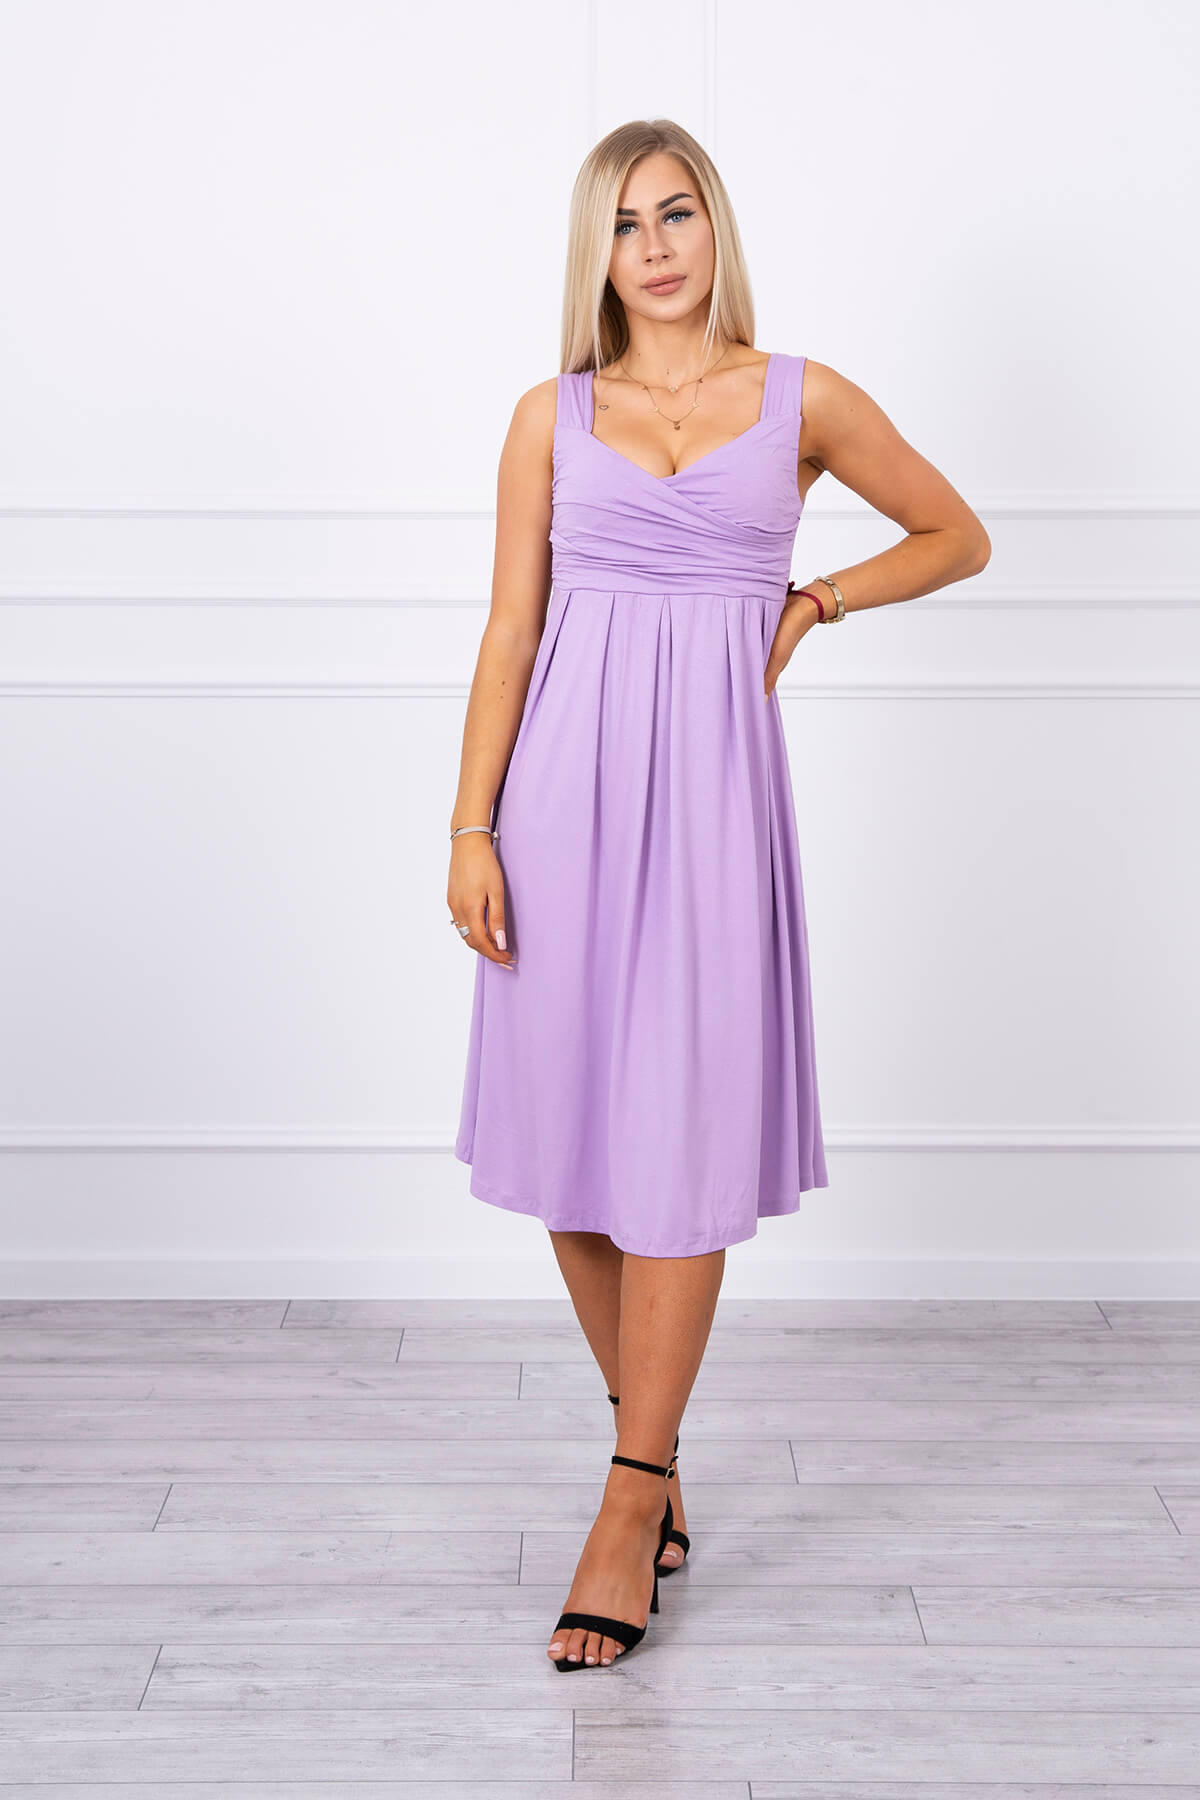 eng pl Dress with wide straps purple 17749 1